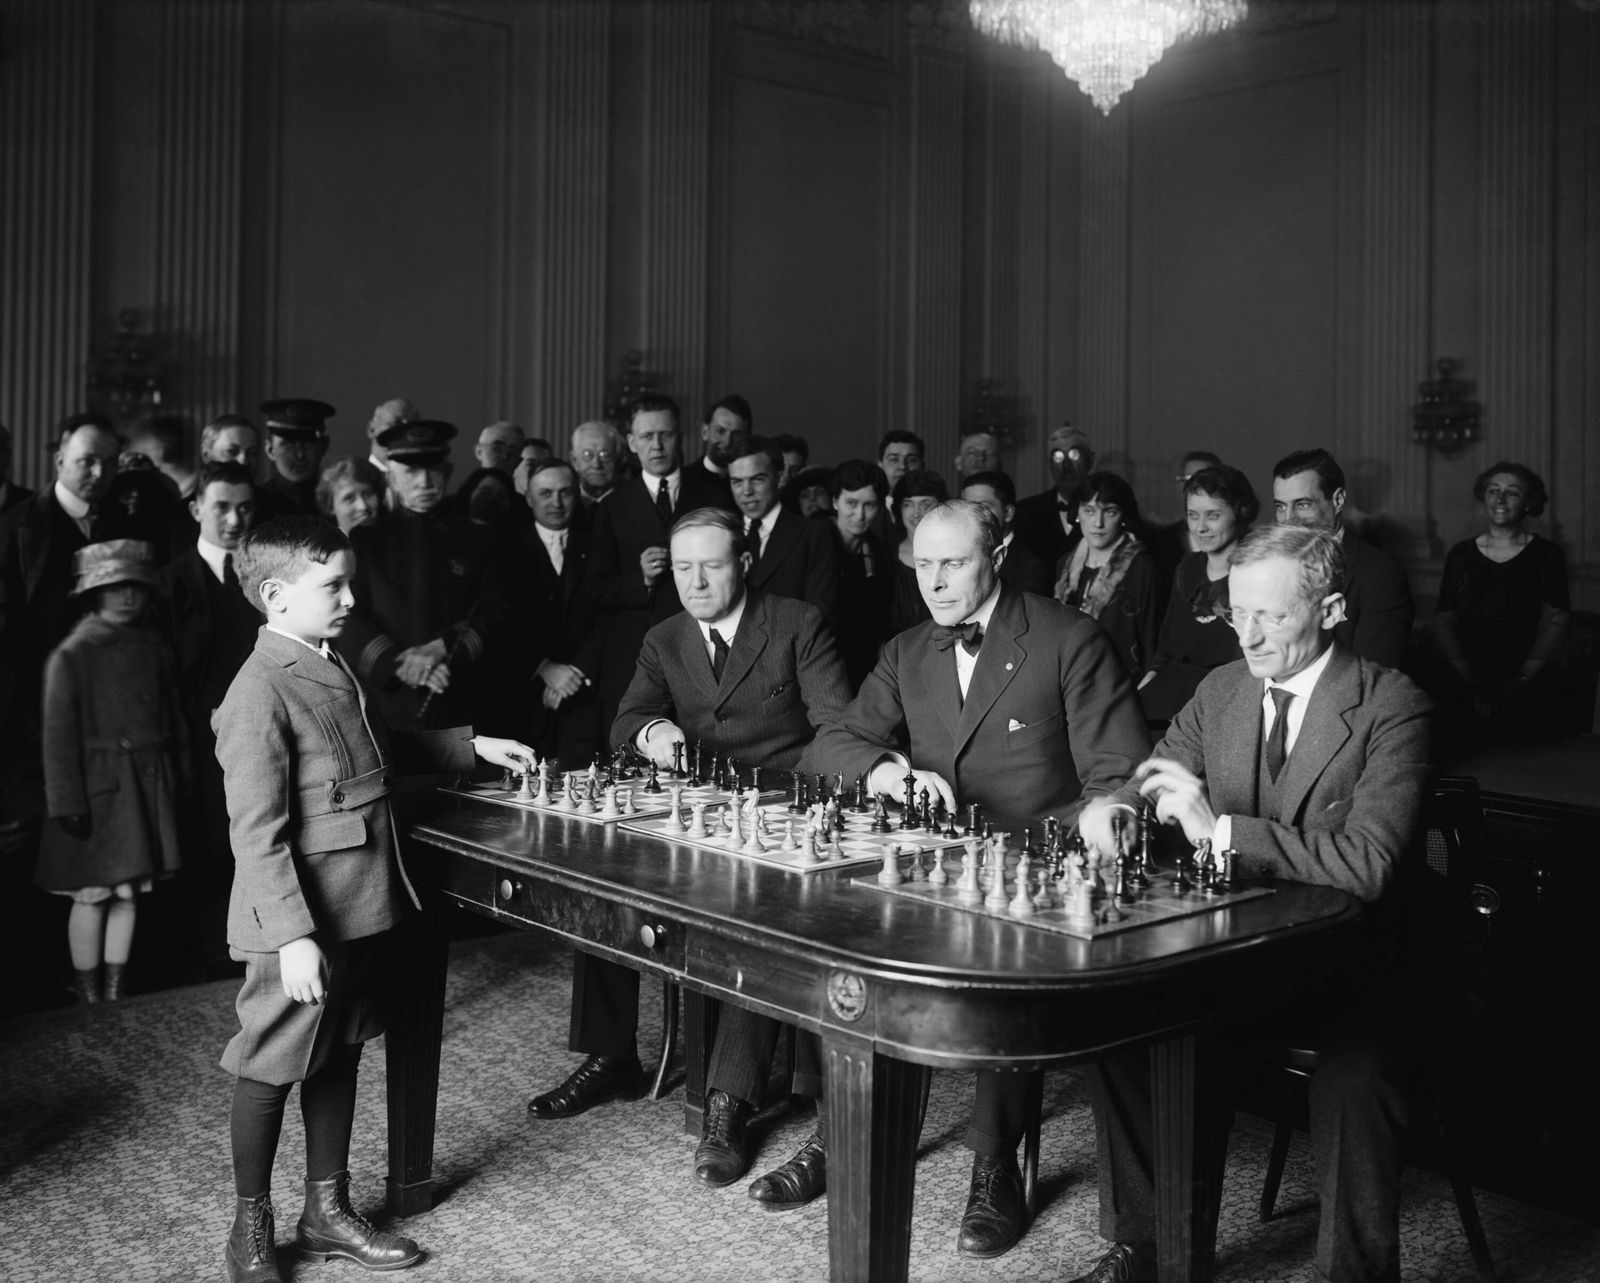 Chess prodigy, Samuel Herman Reshevsky, in a simultaneous chess exhibition match, April 6, 1922. The 10 year old was on